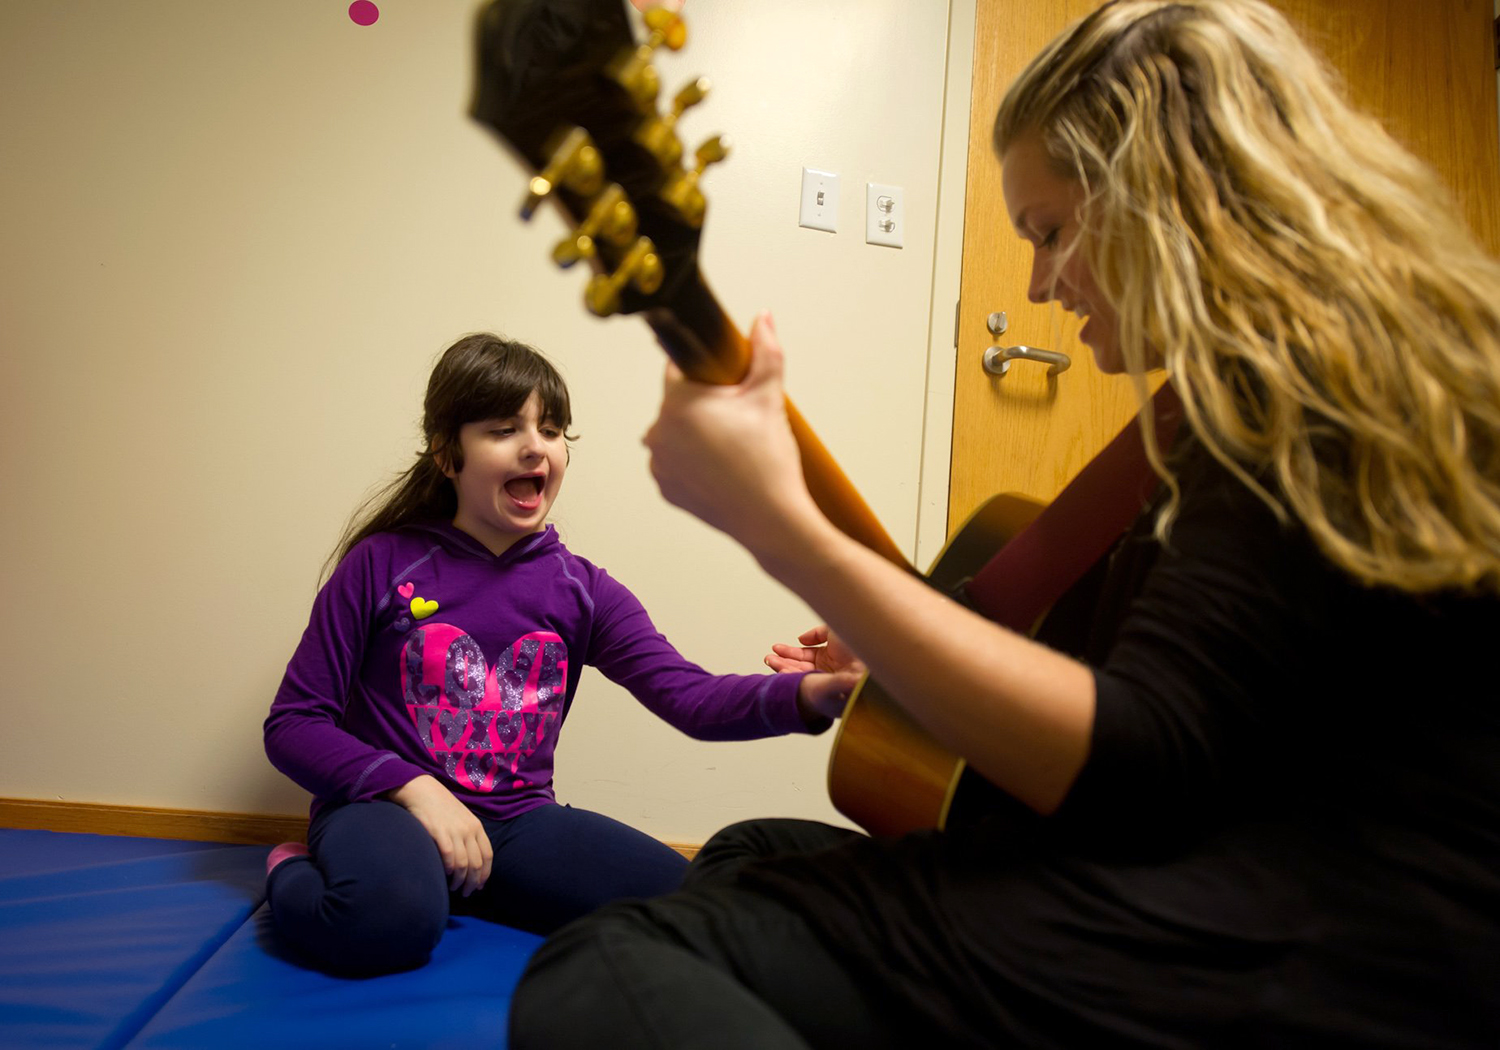 Bari Mogul. 9, works with therapists at The Children's Institute in Pittsburgh, Pennsylvania where Bari and her sister, Hayley, 15, are undergoing extensive therapy to help with their genetic disorders.